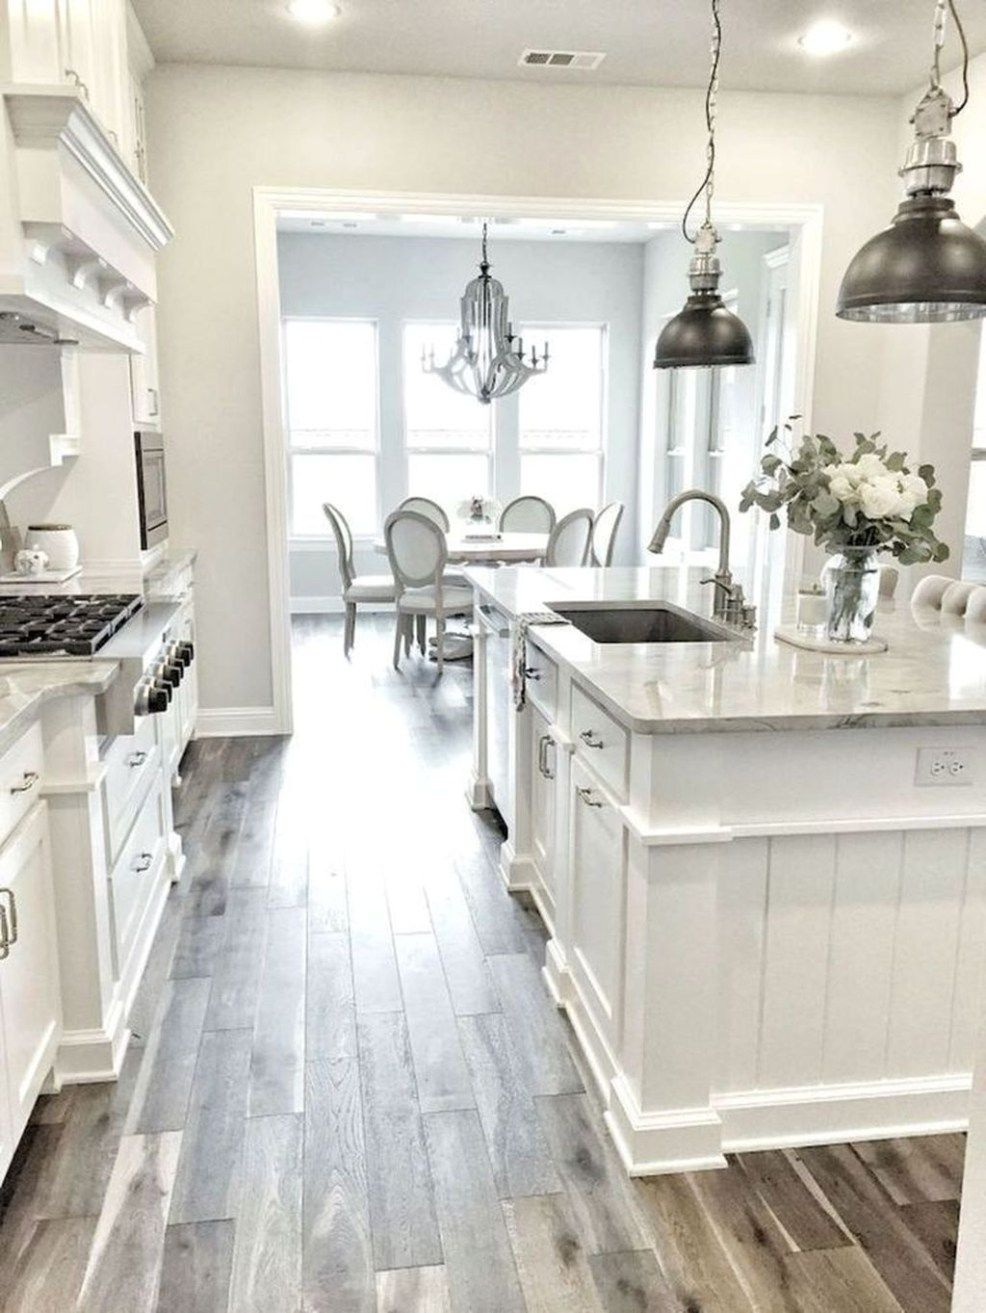 The Best White Kitchen Cabinet Design Ideas To Improve Your 06